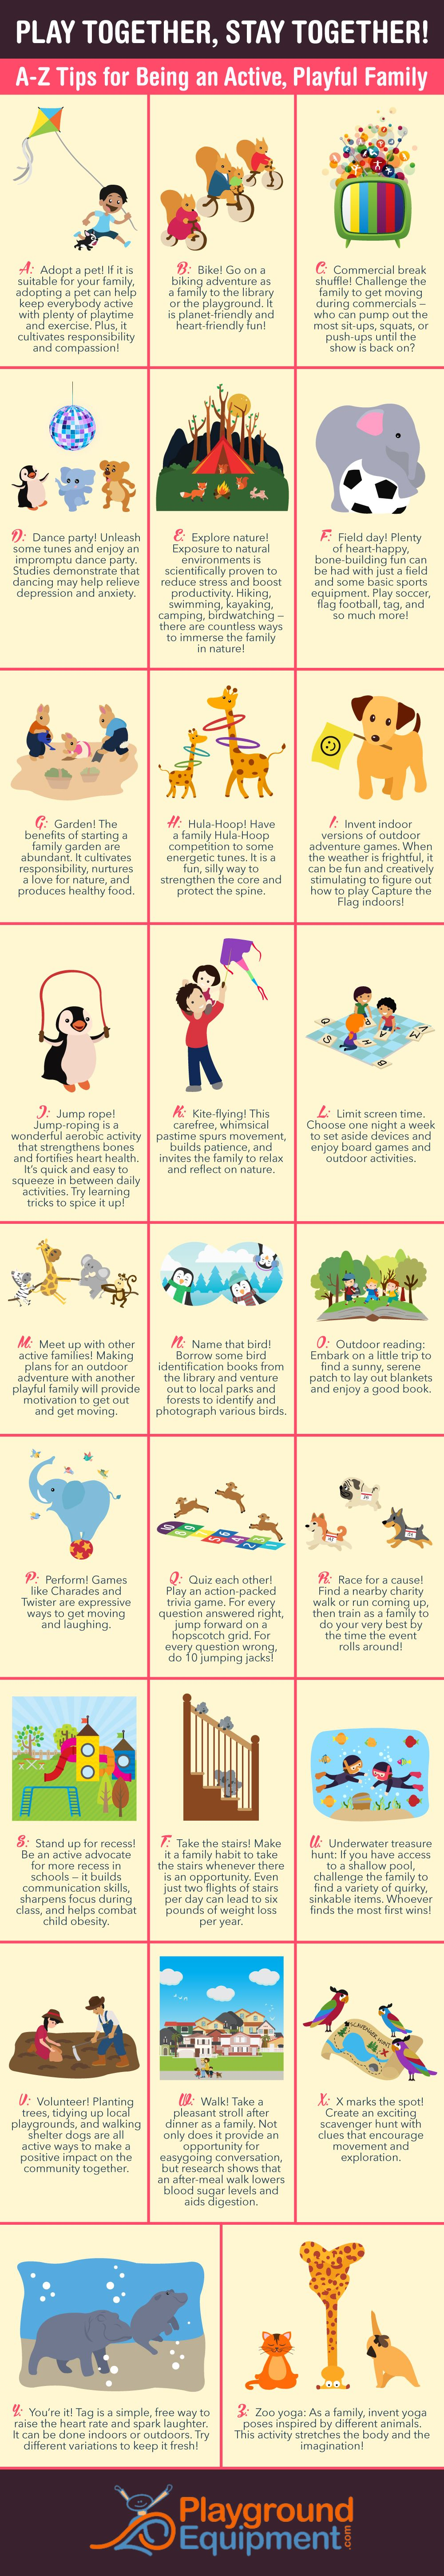 Play Together, Stay Together! A - Z Tips for Being an Active, Playful Family